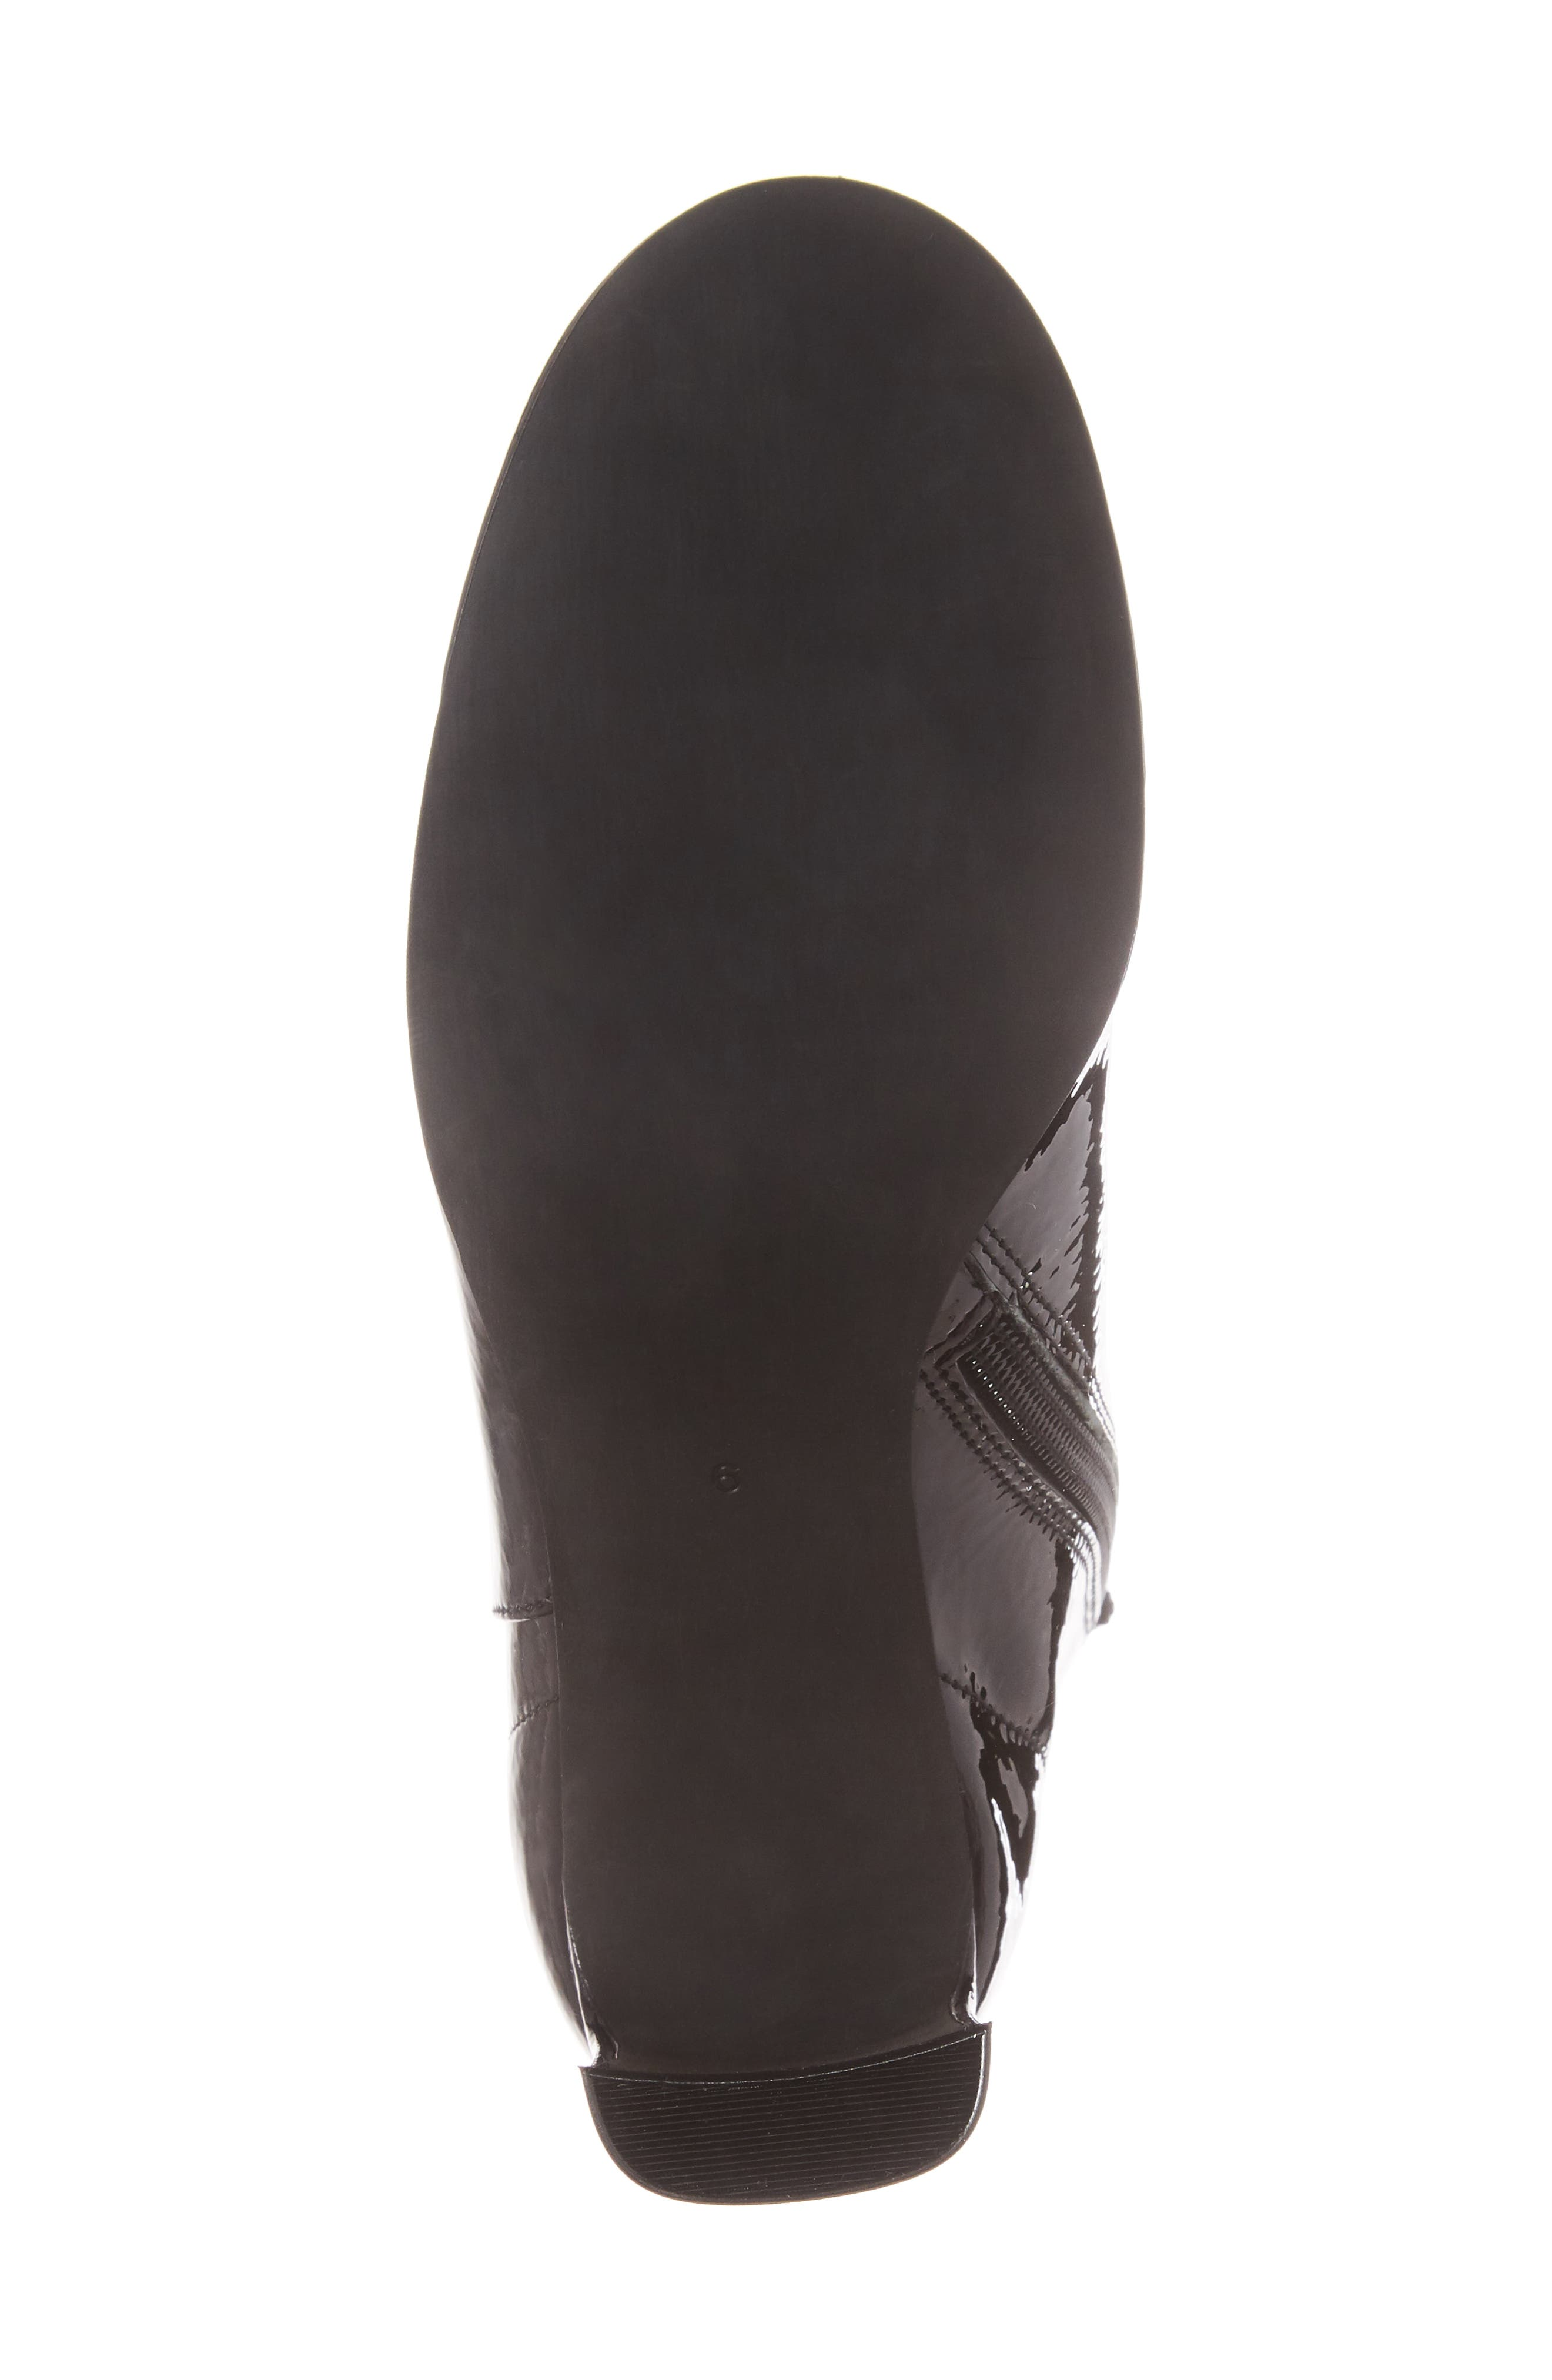 Chapel Curved Heel Bootie,                             Alternate thumbnail 6, color,                             Black Crinkle Patent